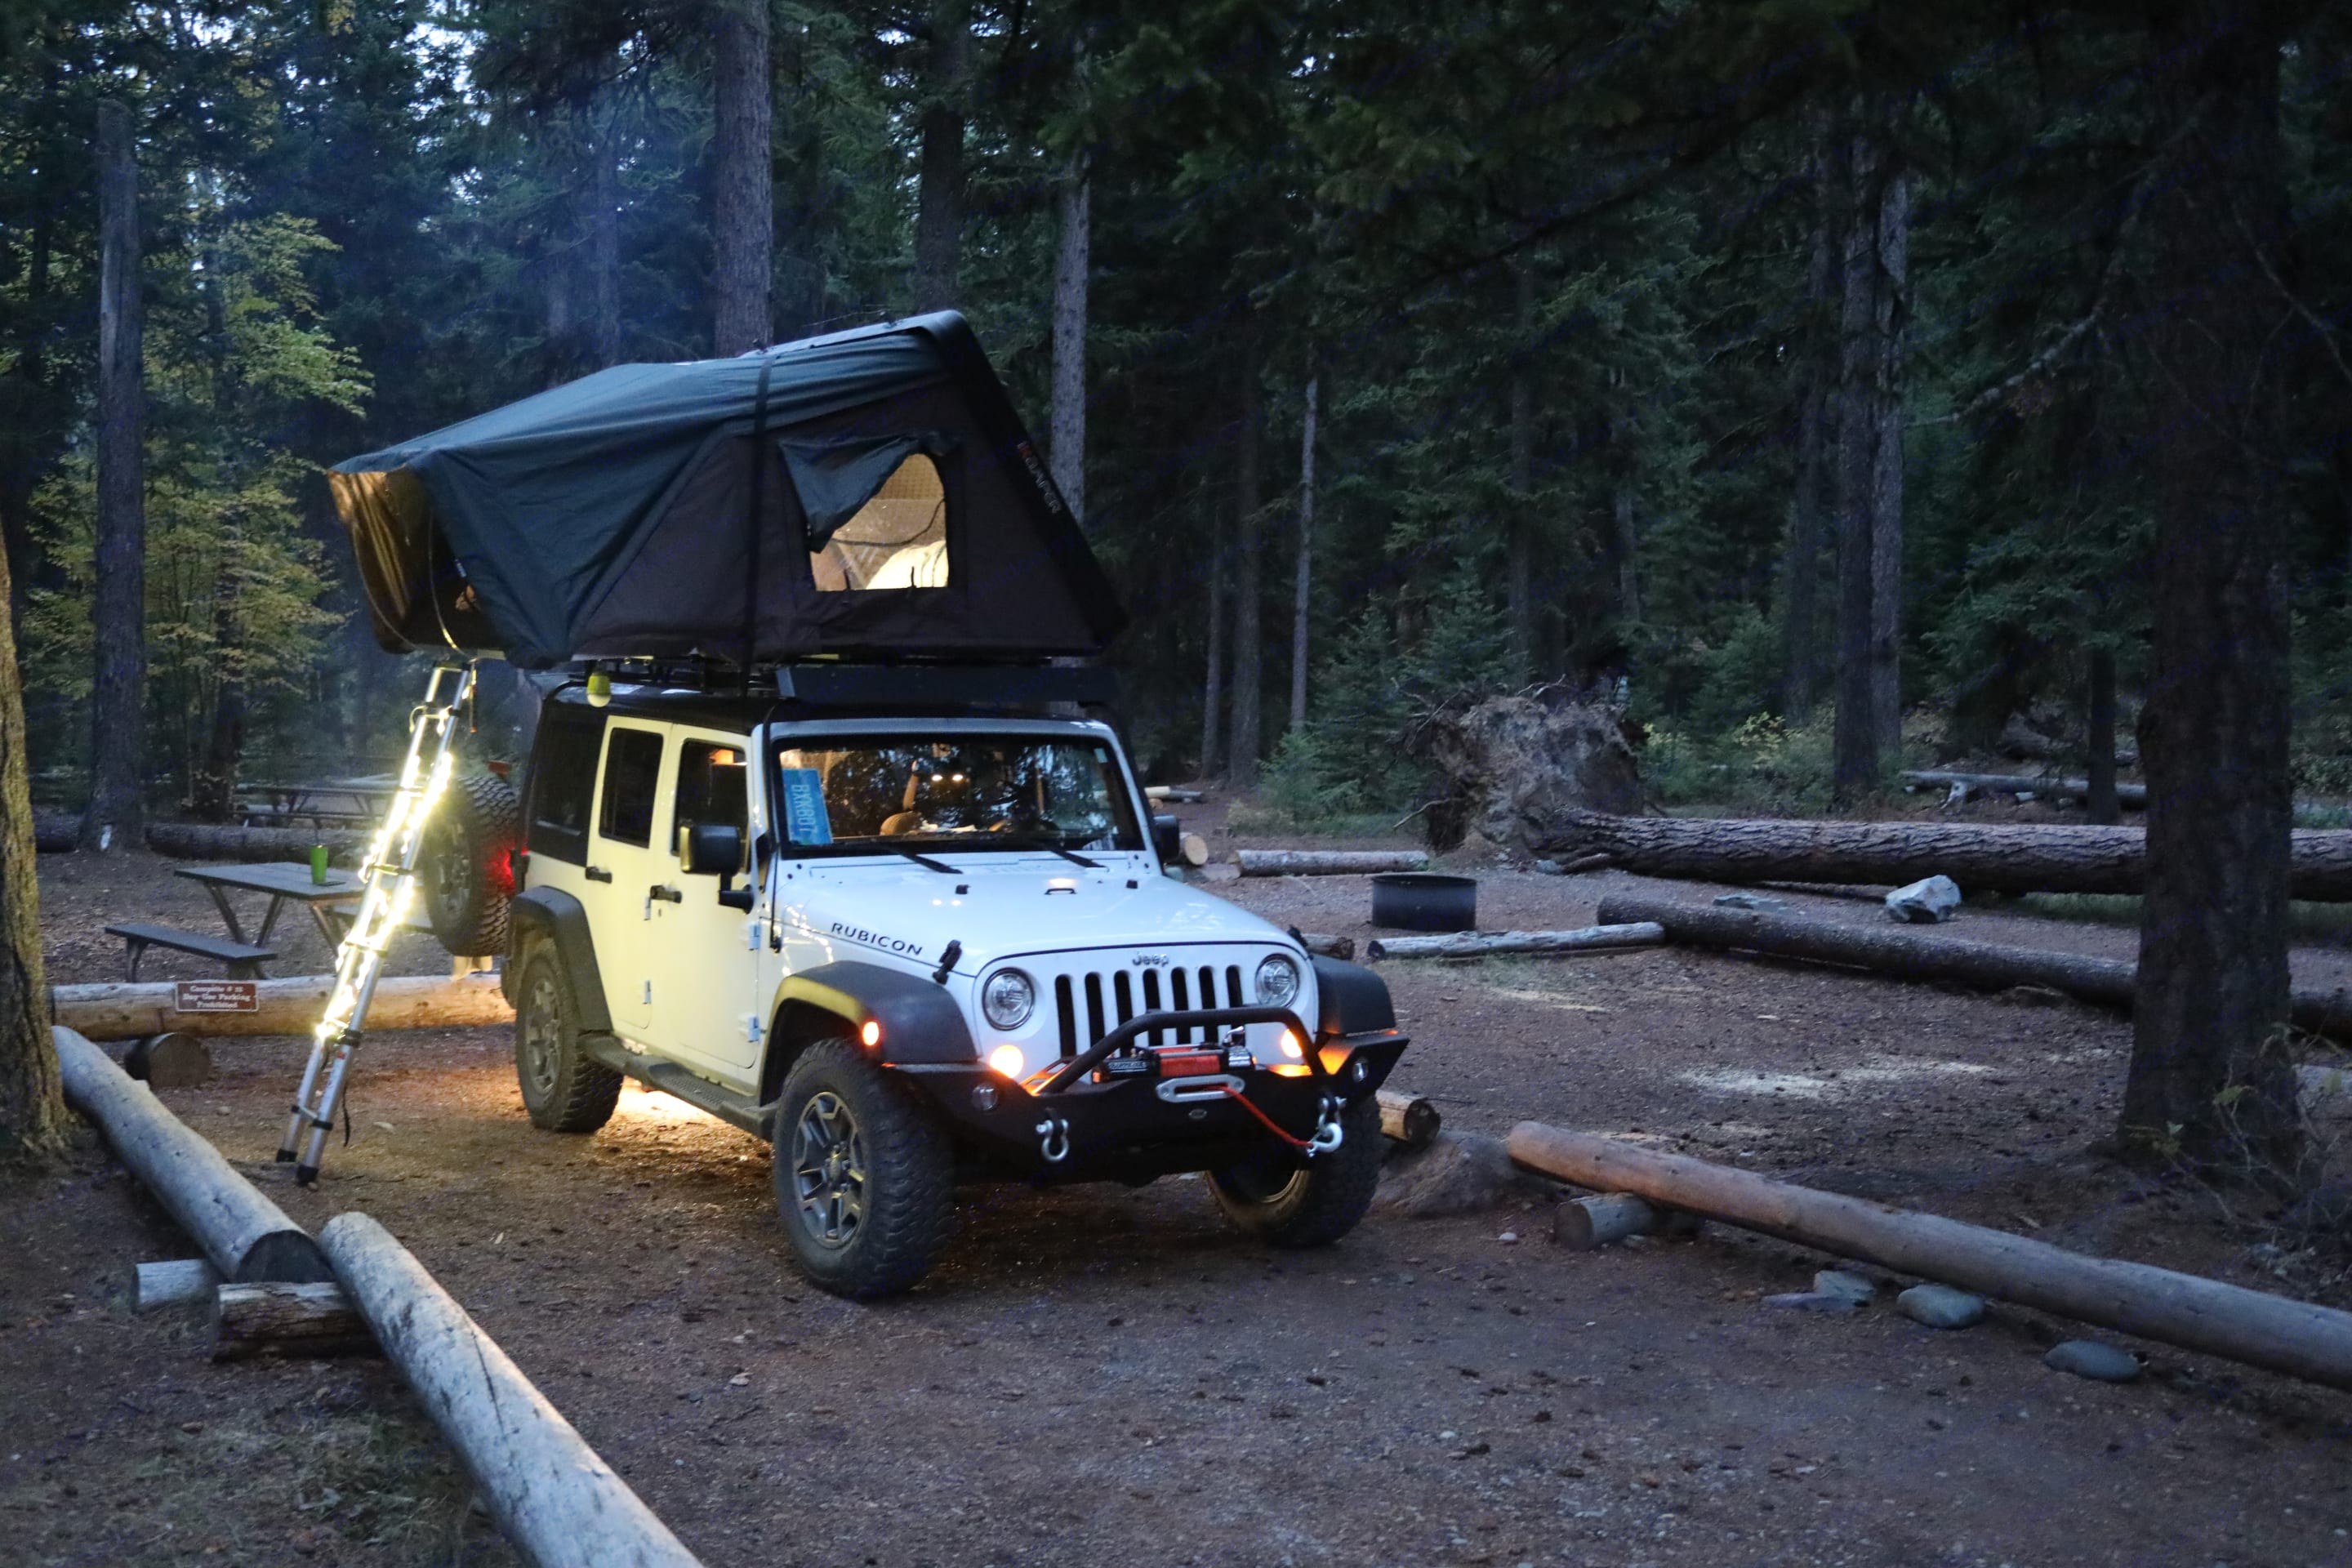 2017 Jeep Rubicon ready for your next adventure in Montana. Explorer the back country roads and find your next great adventure.. Jeep JKU  4 door Jeep Rubicon 2017